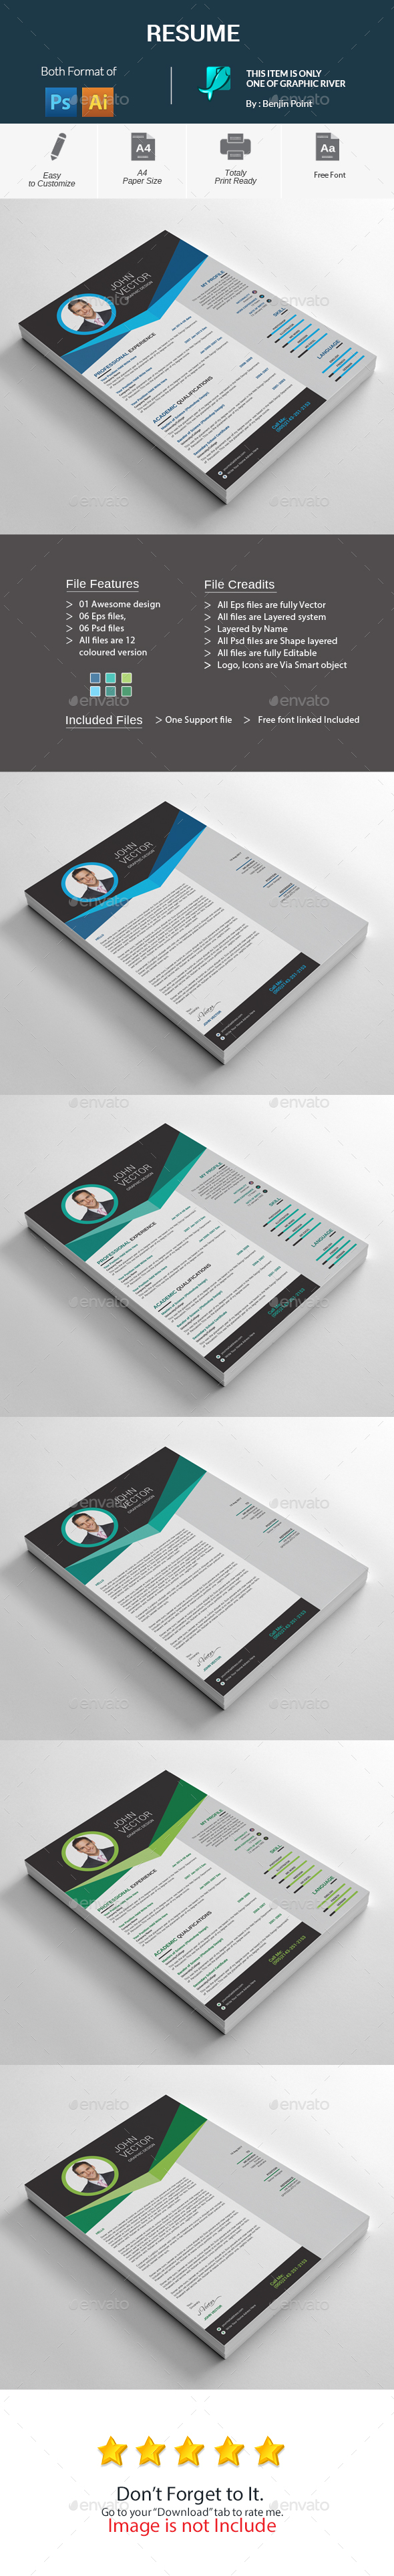 GraphicRiver Resume 20451876